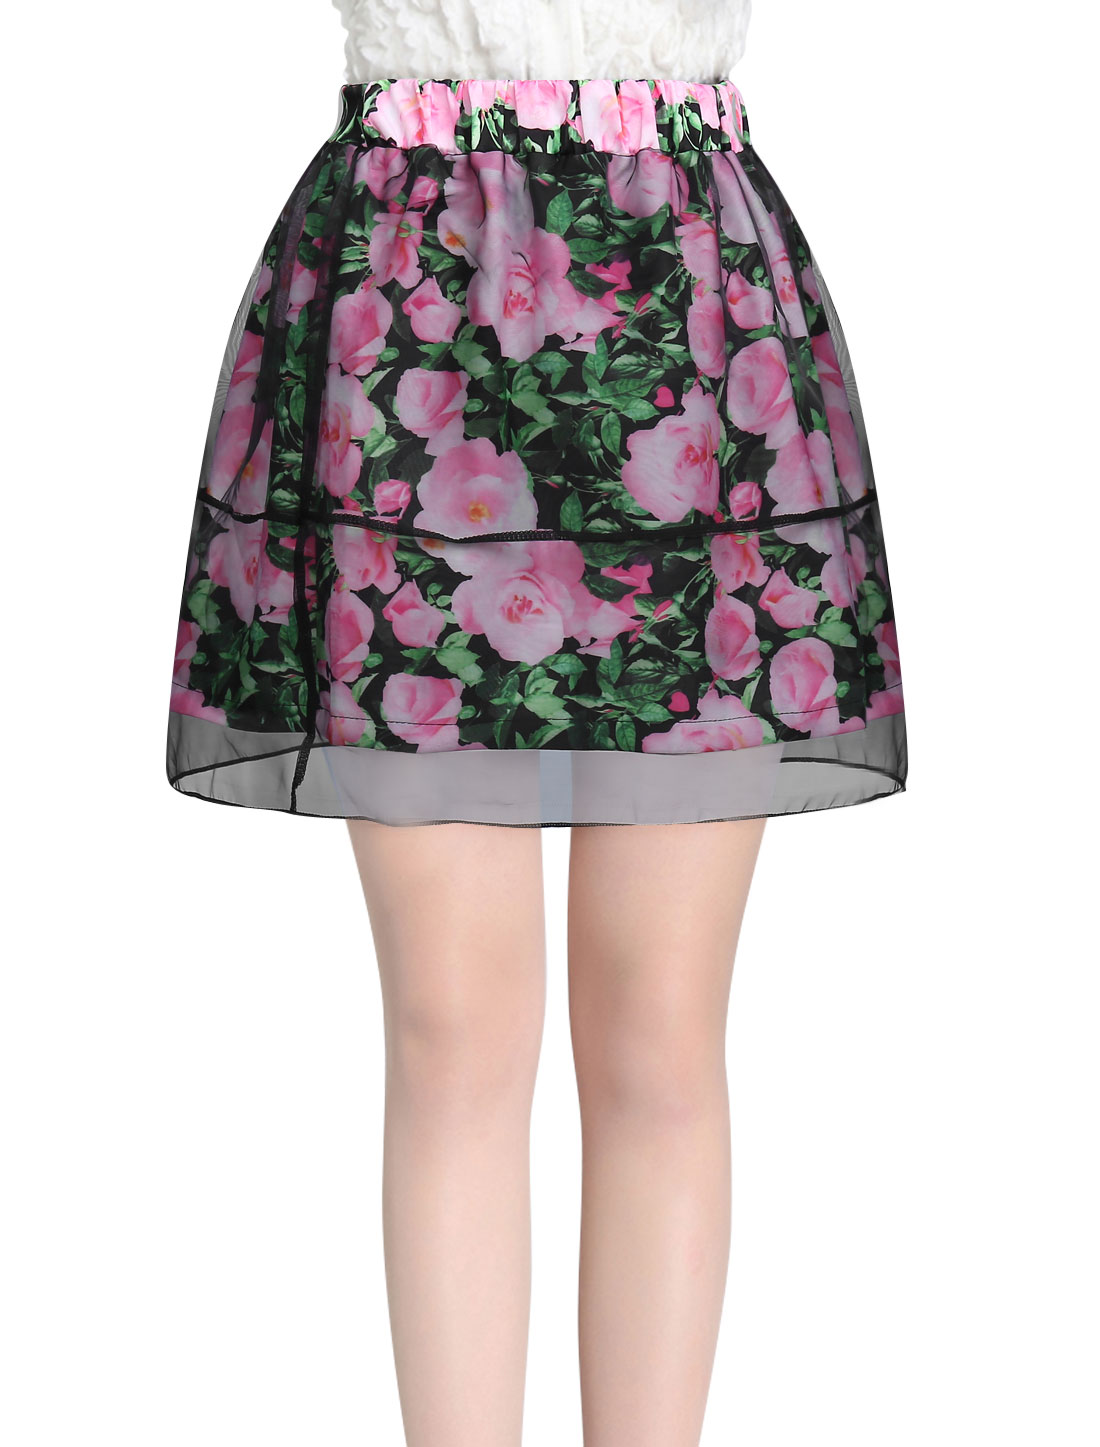 Women Stretchy Waist Floral Prints Mesh Overlay Skirt Pink XS